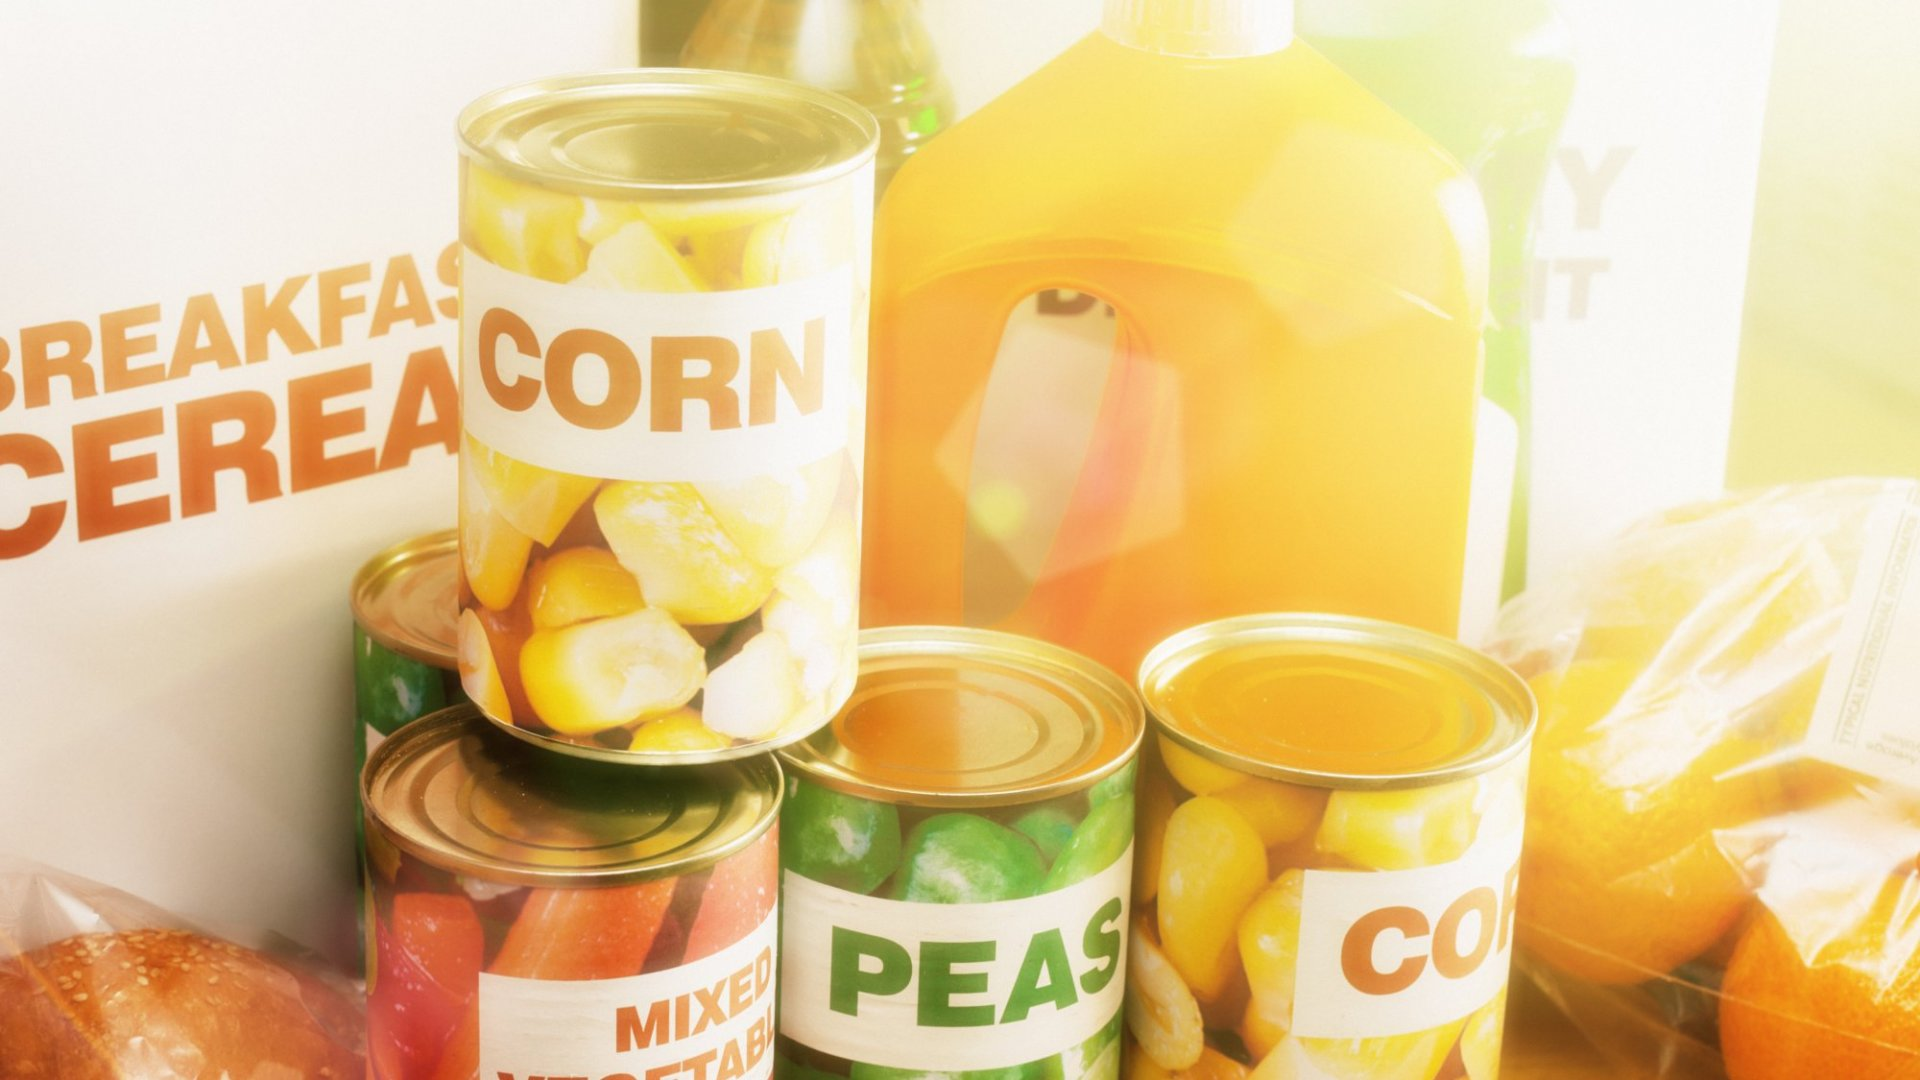 3 Things to Keep in Mind When Designing Your Product Packaging